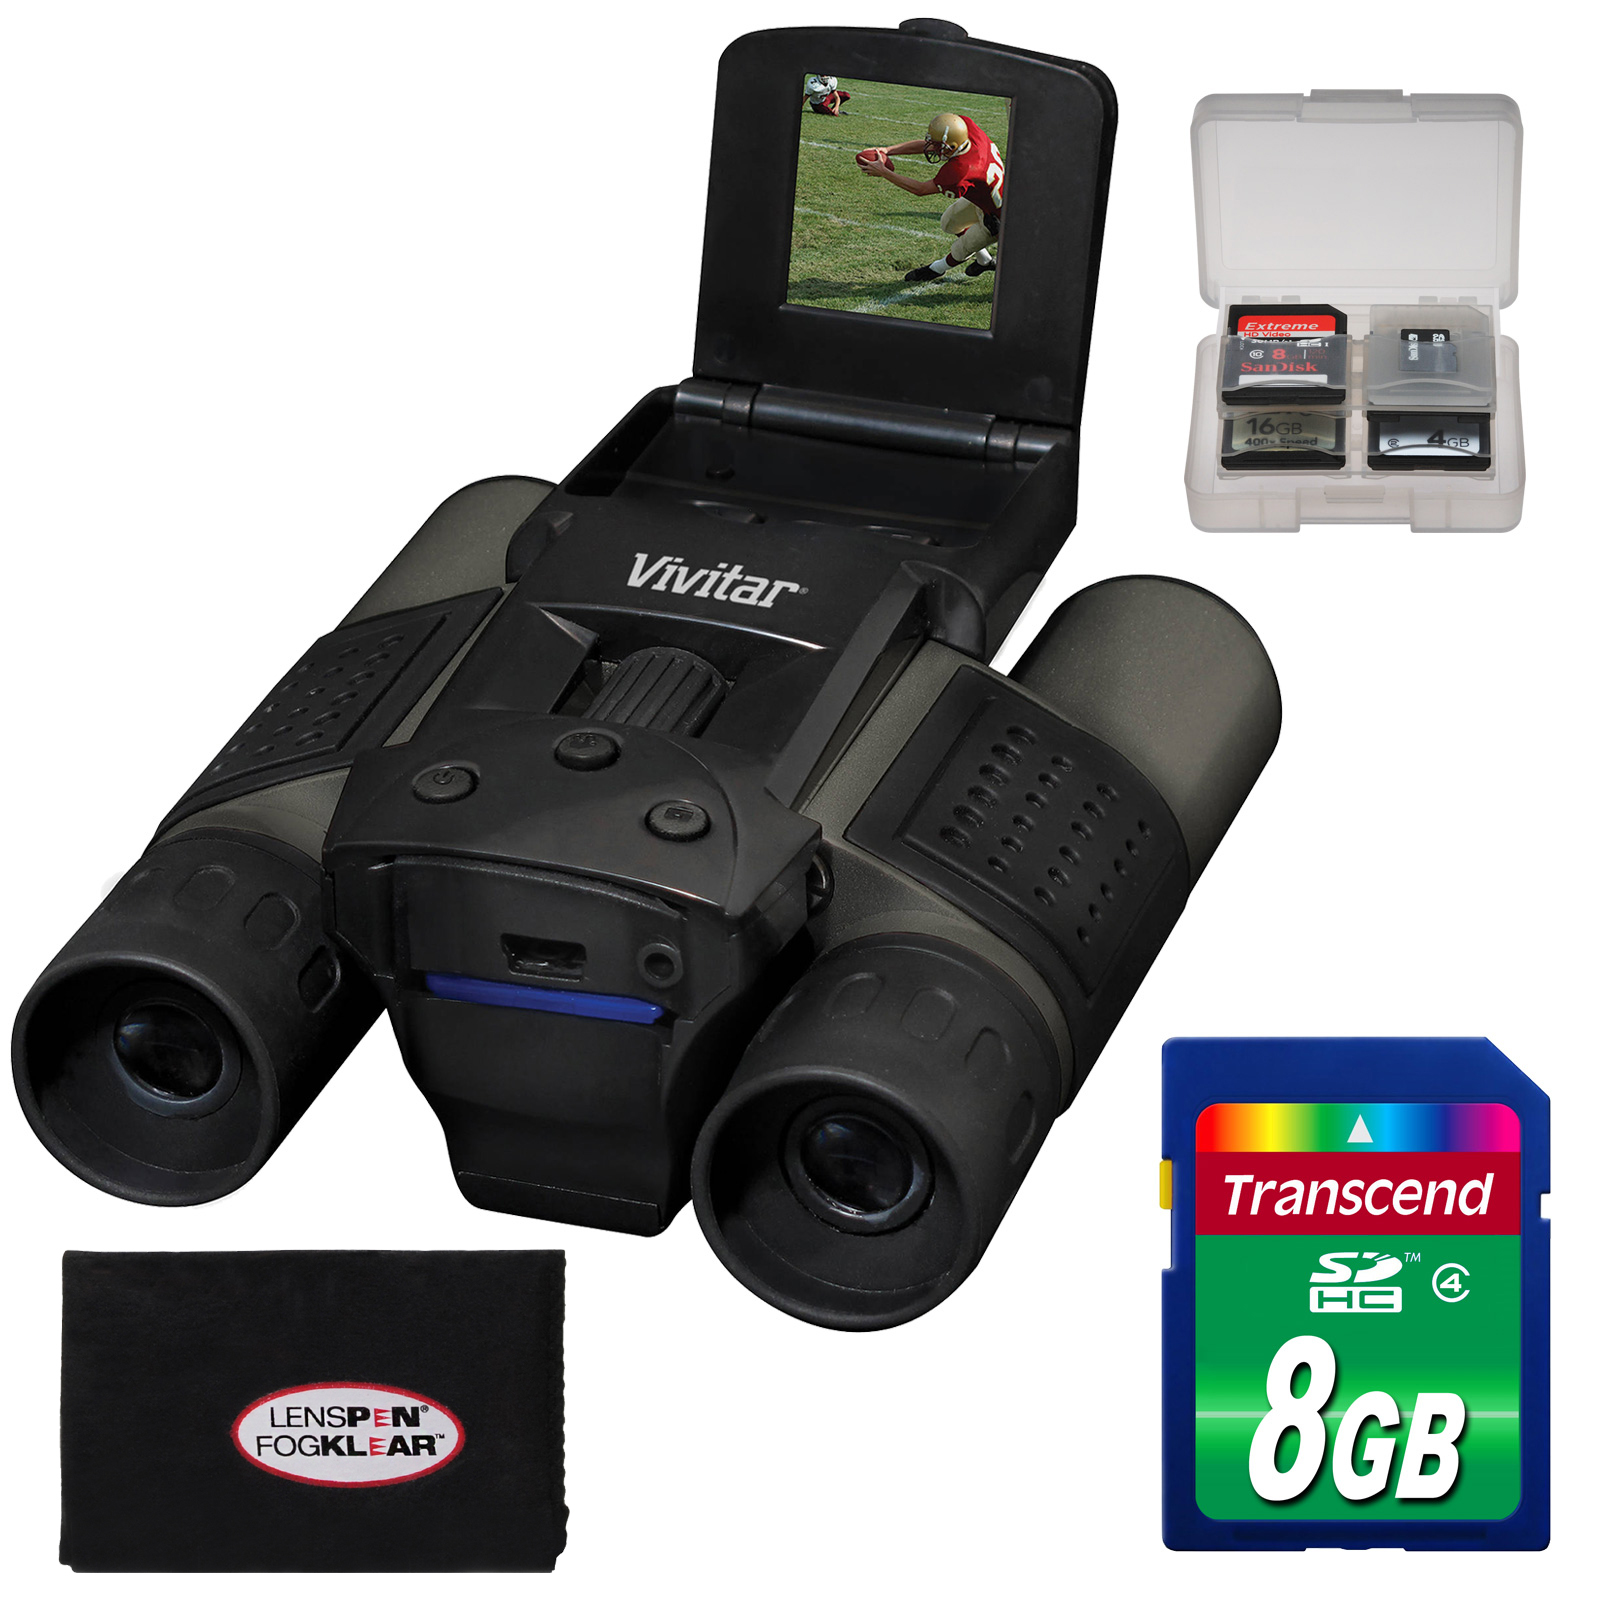 Vivitar 12x25 Binoculars with Built-in Digital Camera with 8GB Card + Accessory Kit